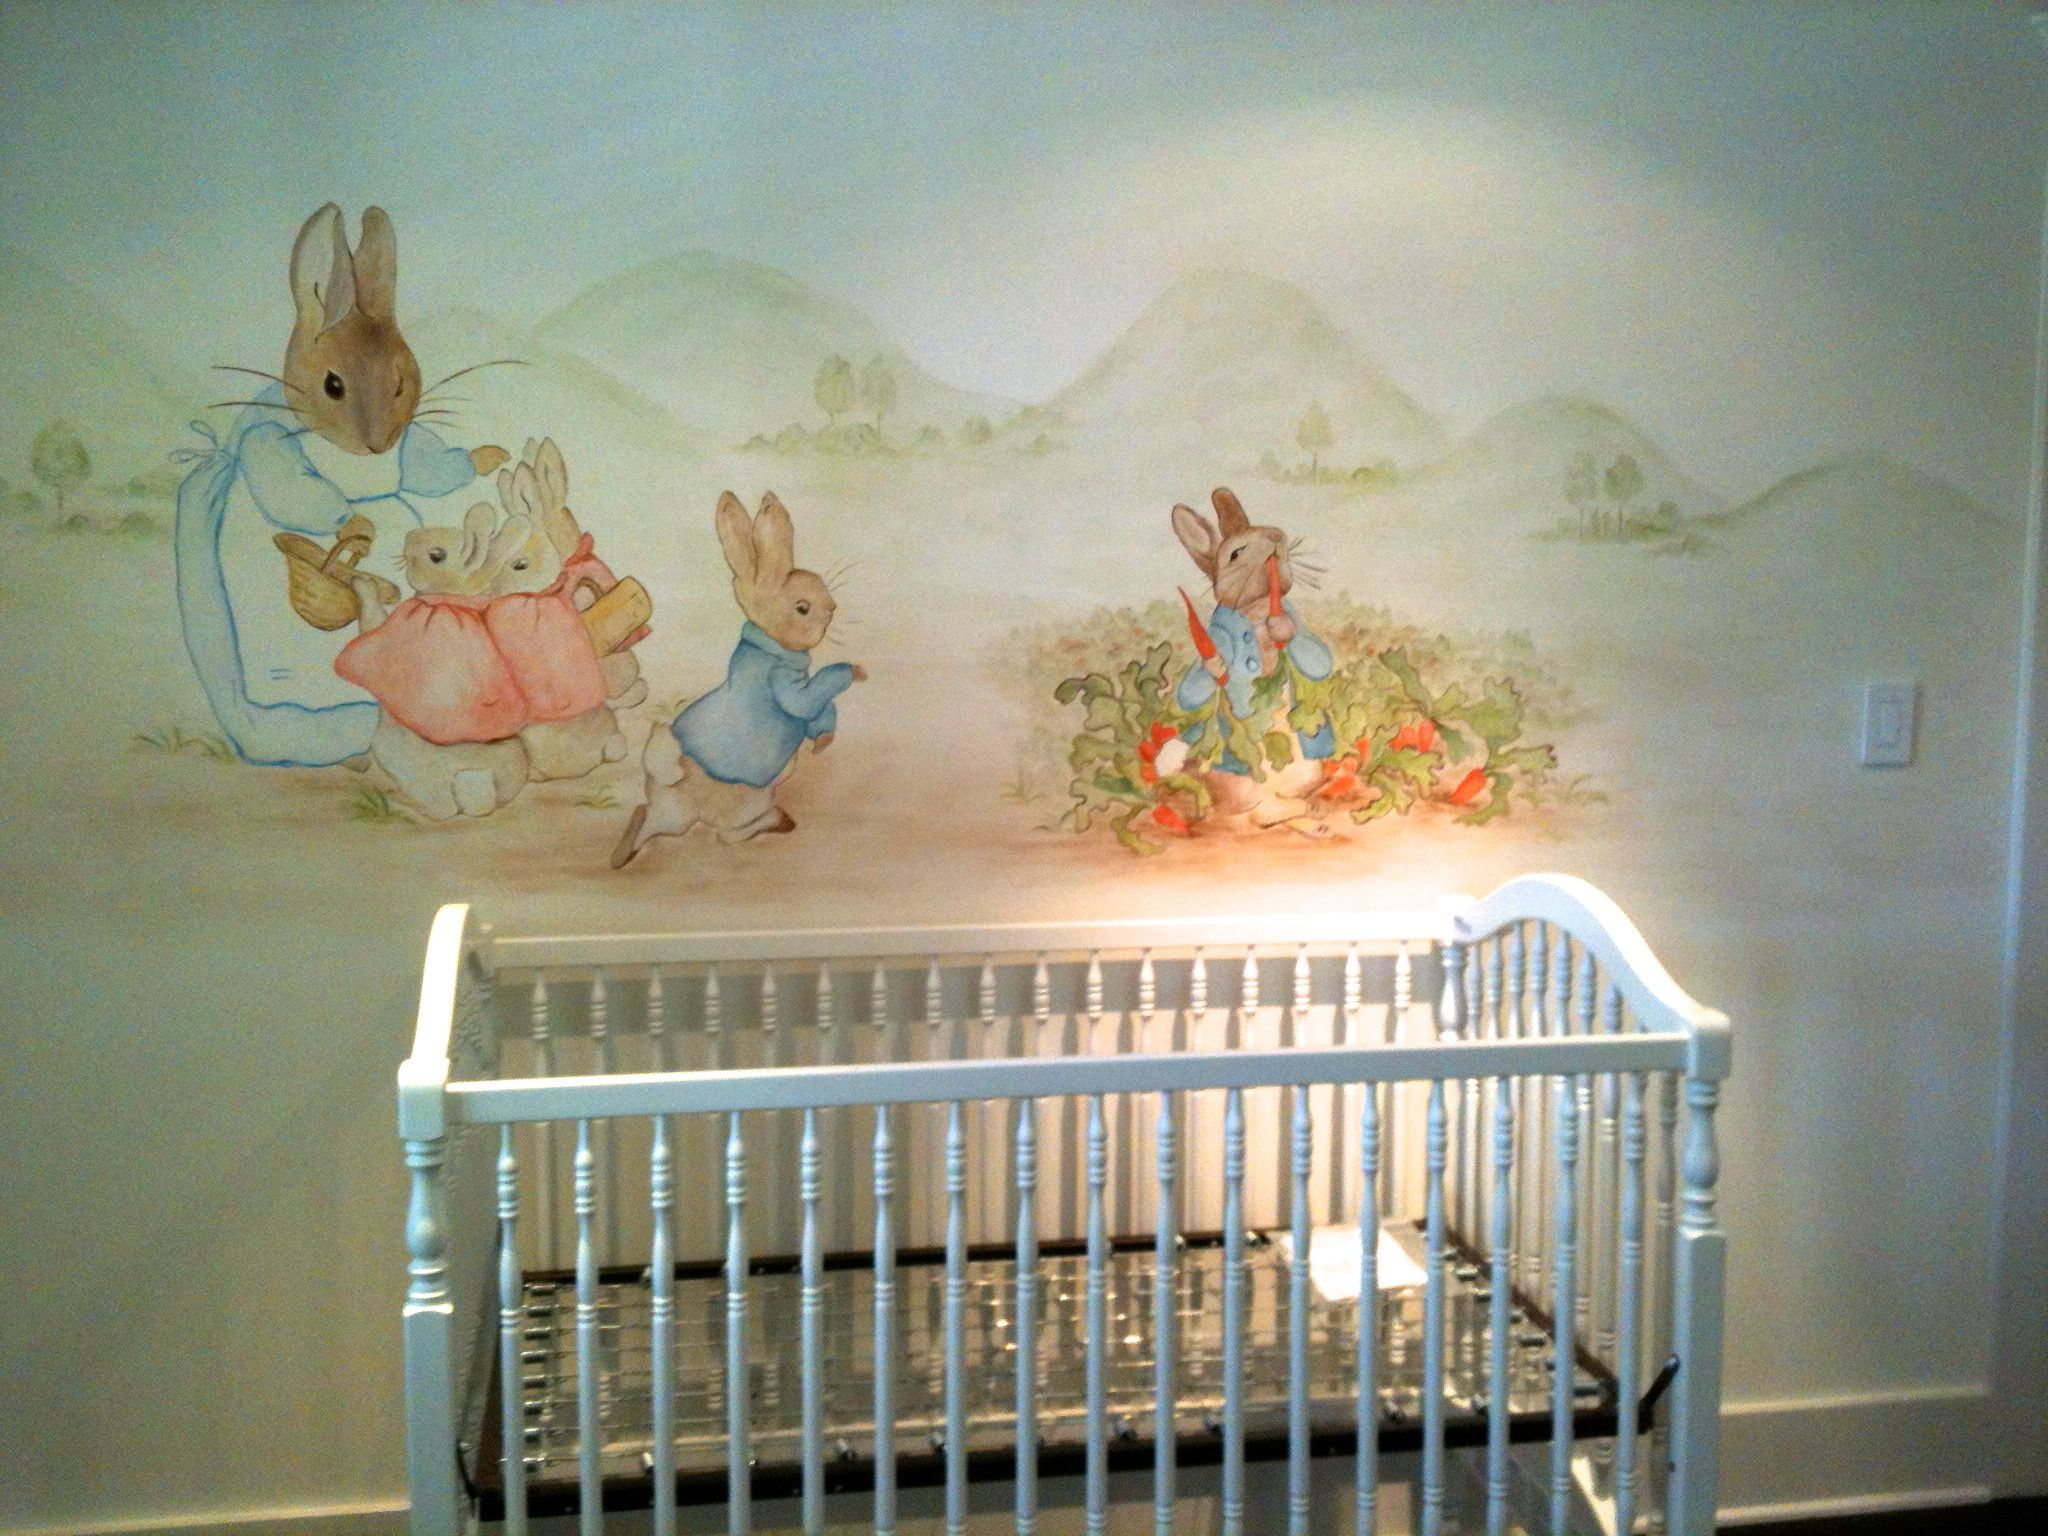 Nursery Mural After The Book Peter Rabbit